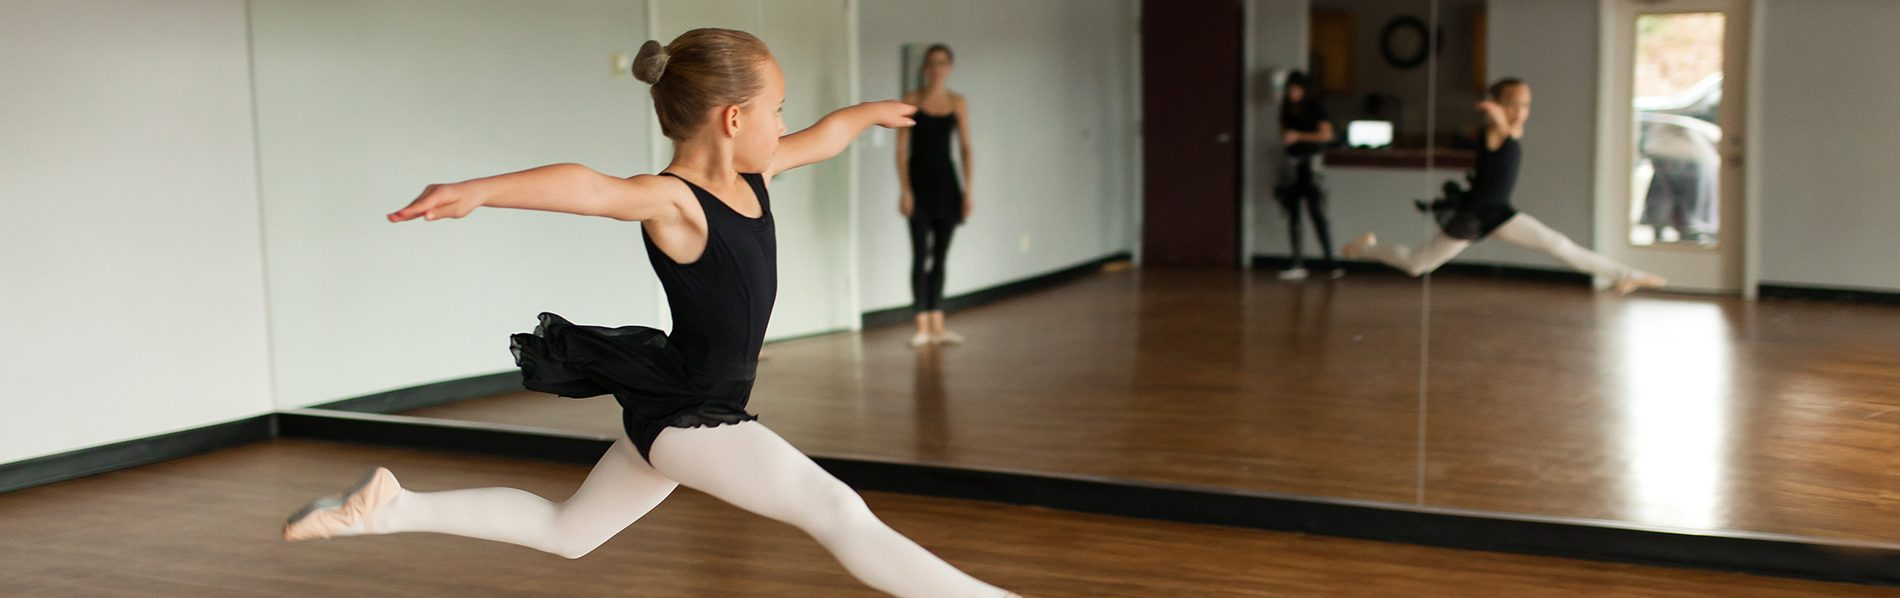 Calgary Childrens Dance Classes